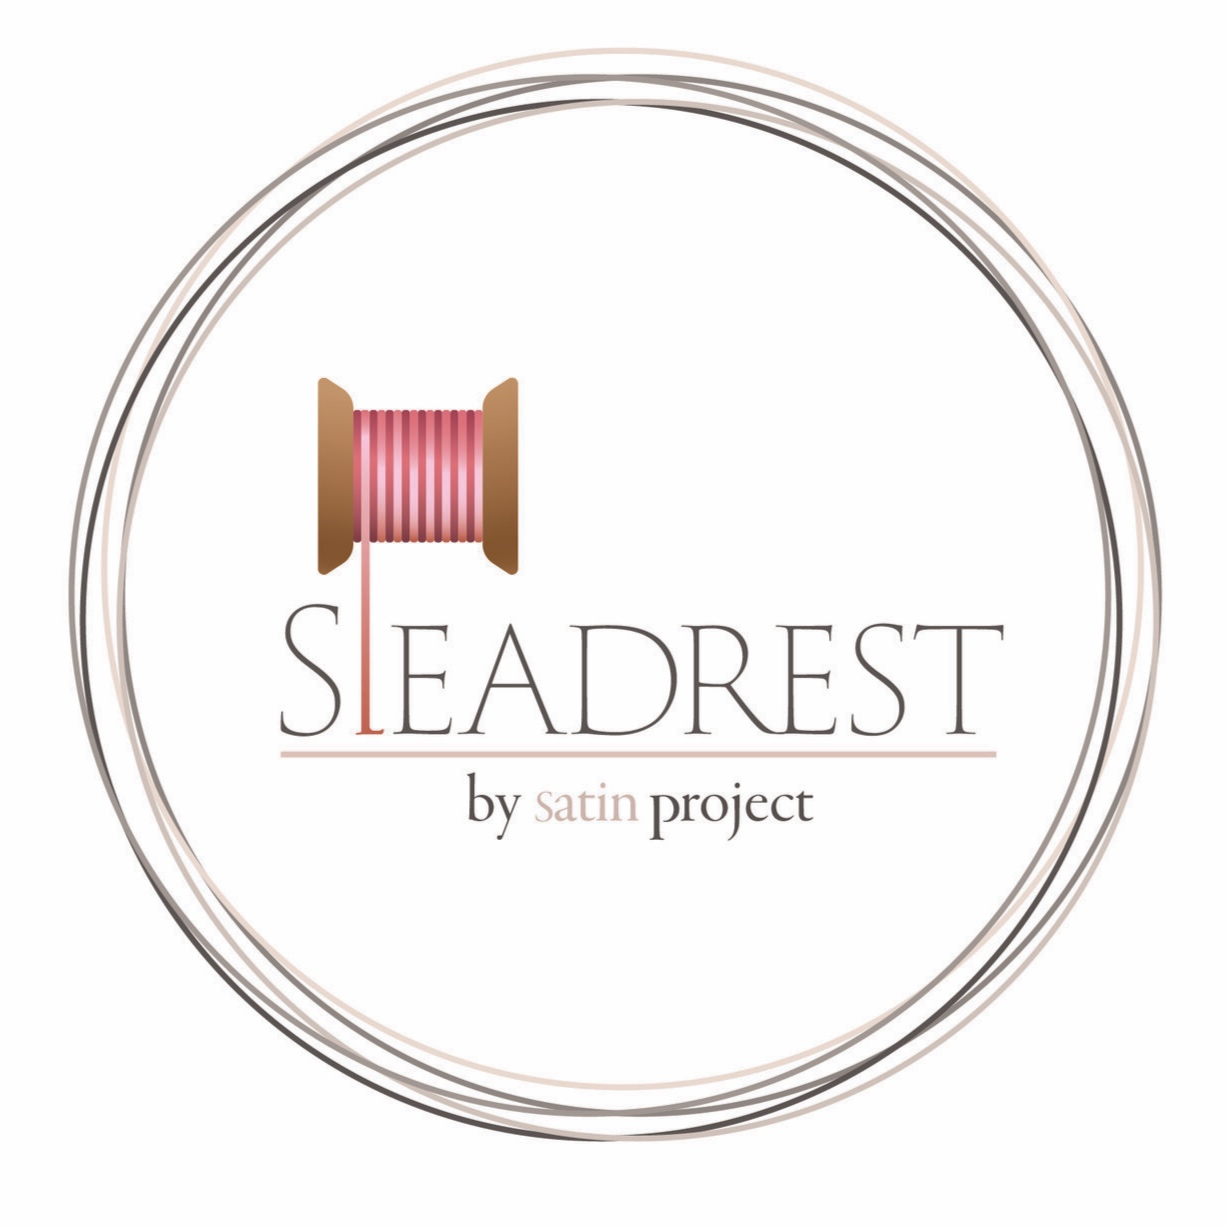 Sleadrest_Final-01.jpg